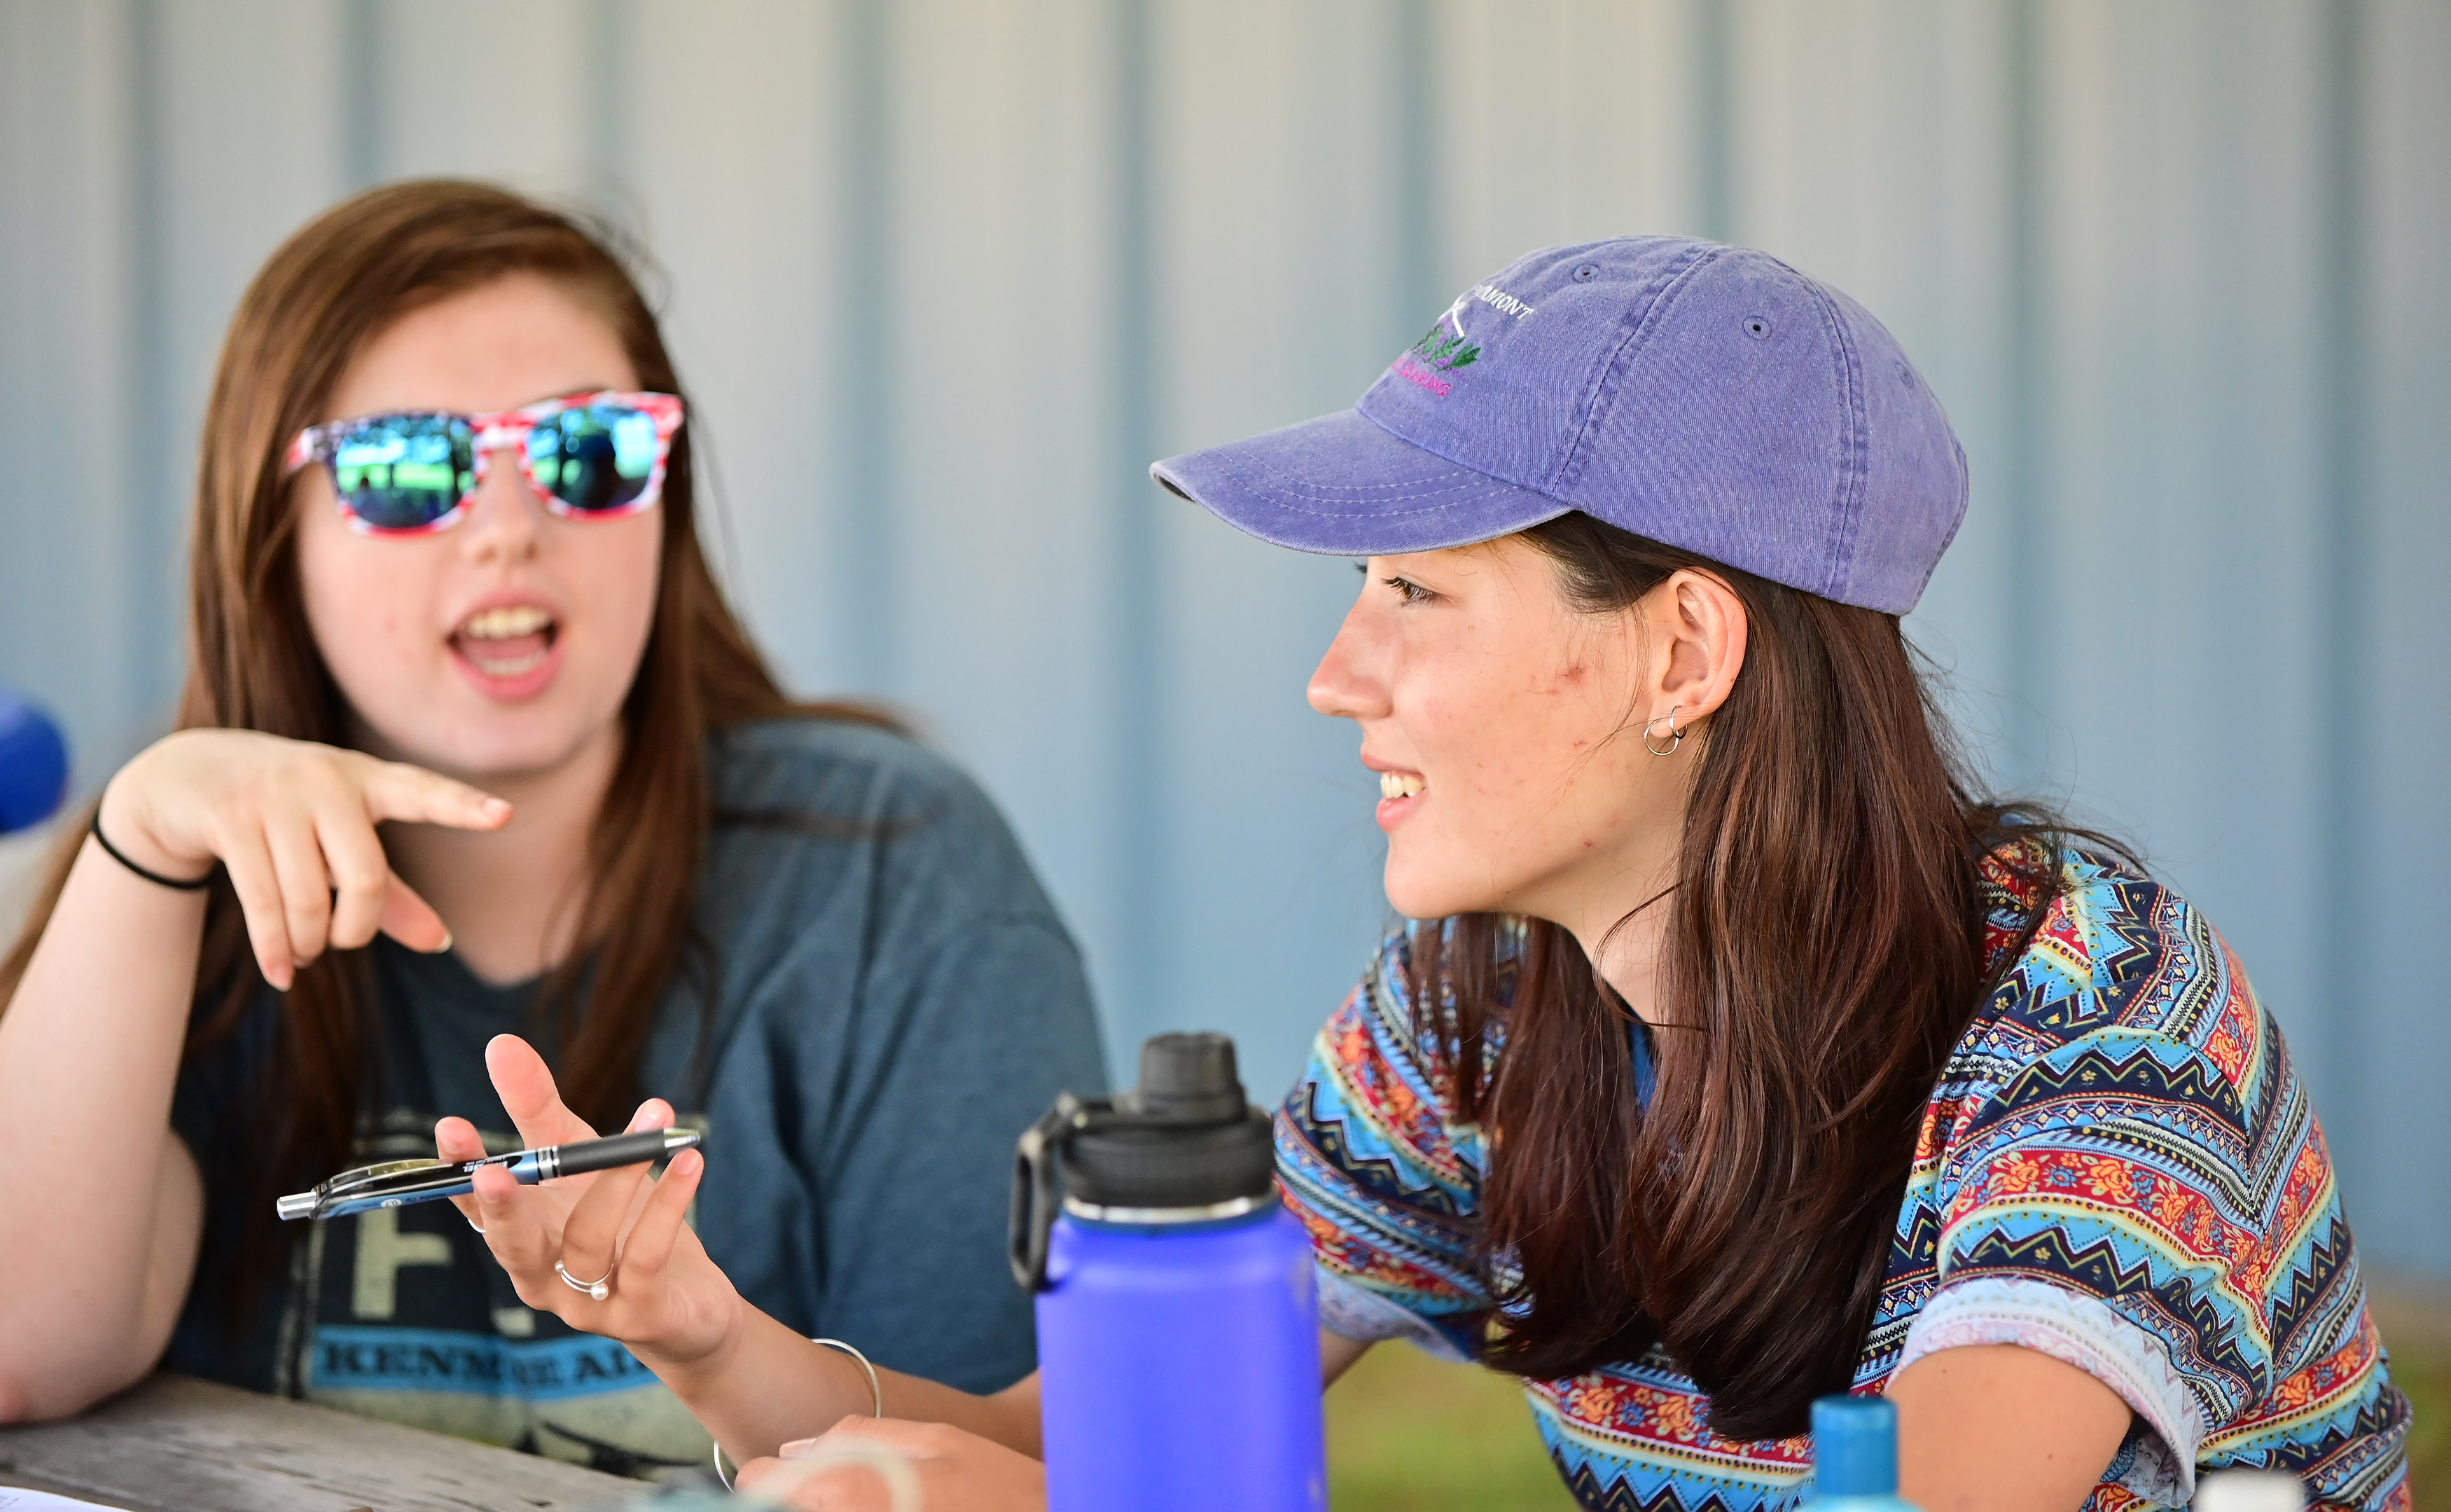 Sonia Talarek of New Jersey, right, who attended the Vermont youth glider camp for her third time, coaches fellow 16-year-old sailplane student Lauren Tulis. Photo by David Tulis.